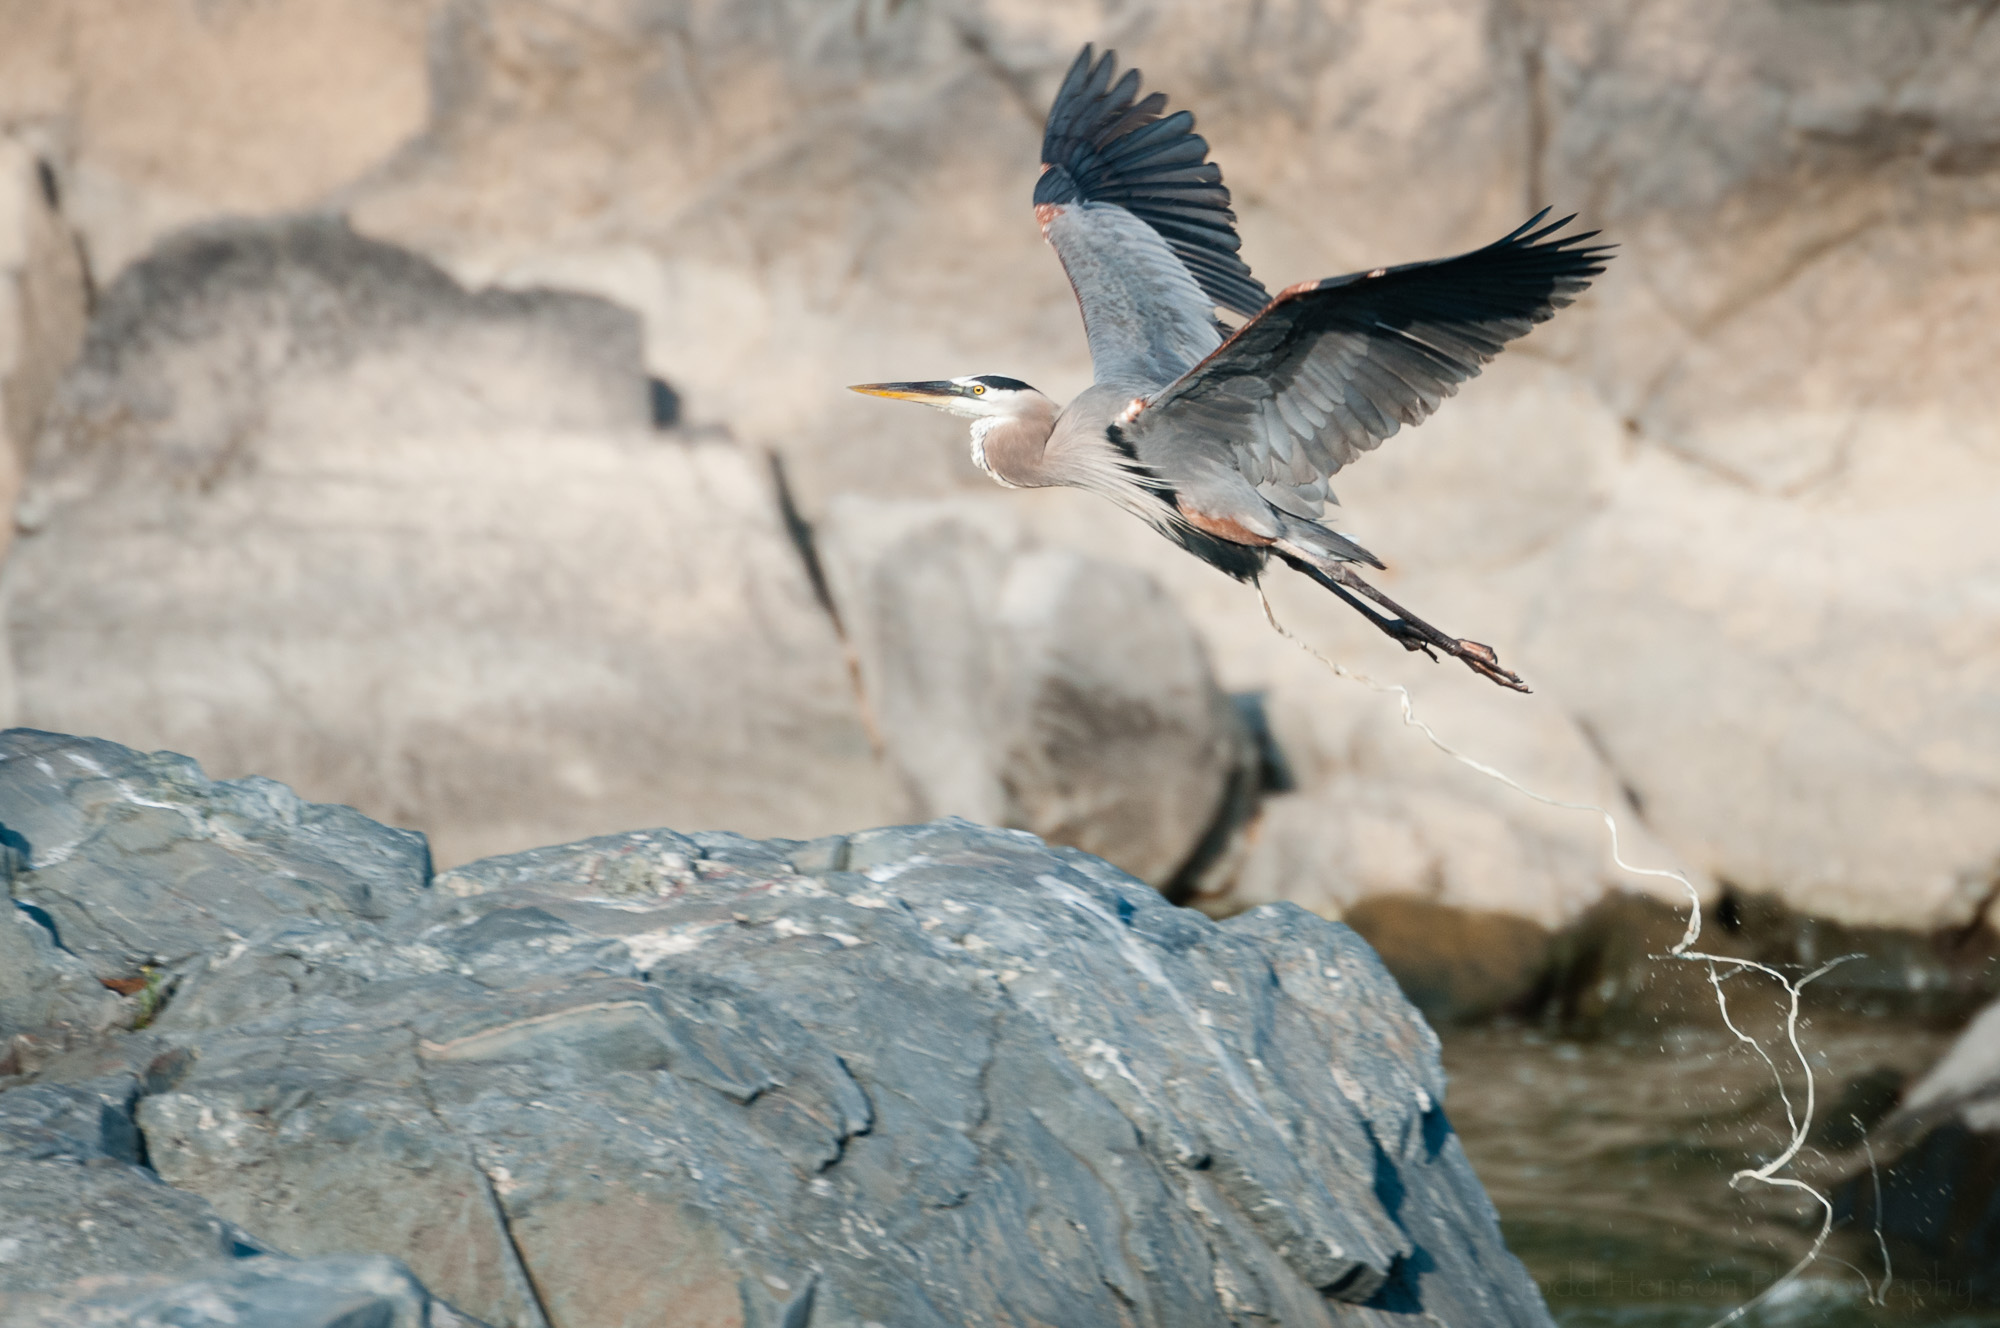 I feel sorry for any poor paddler in the river below this Great Blue Heron! Click on the image for a larger view. Go ahead, I dare you!